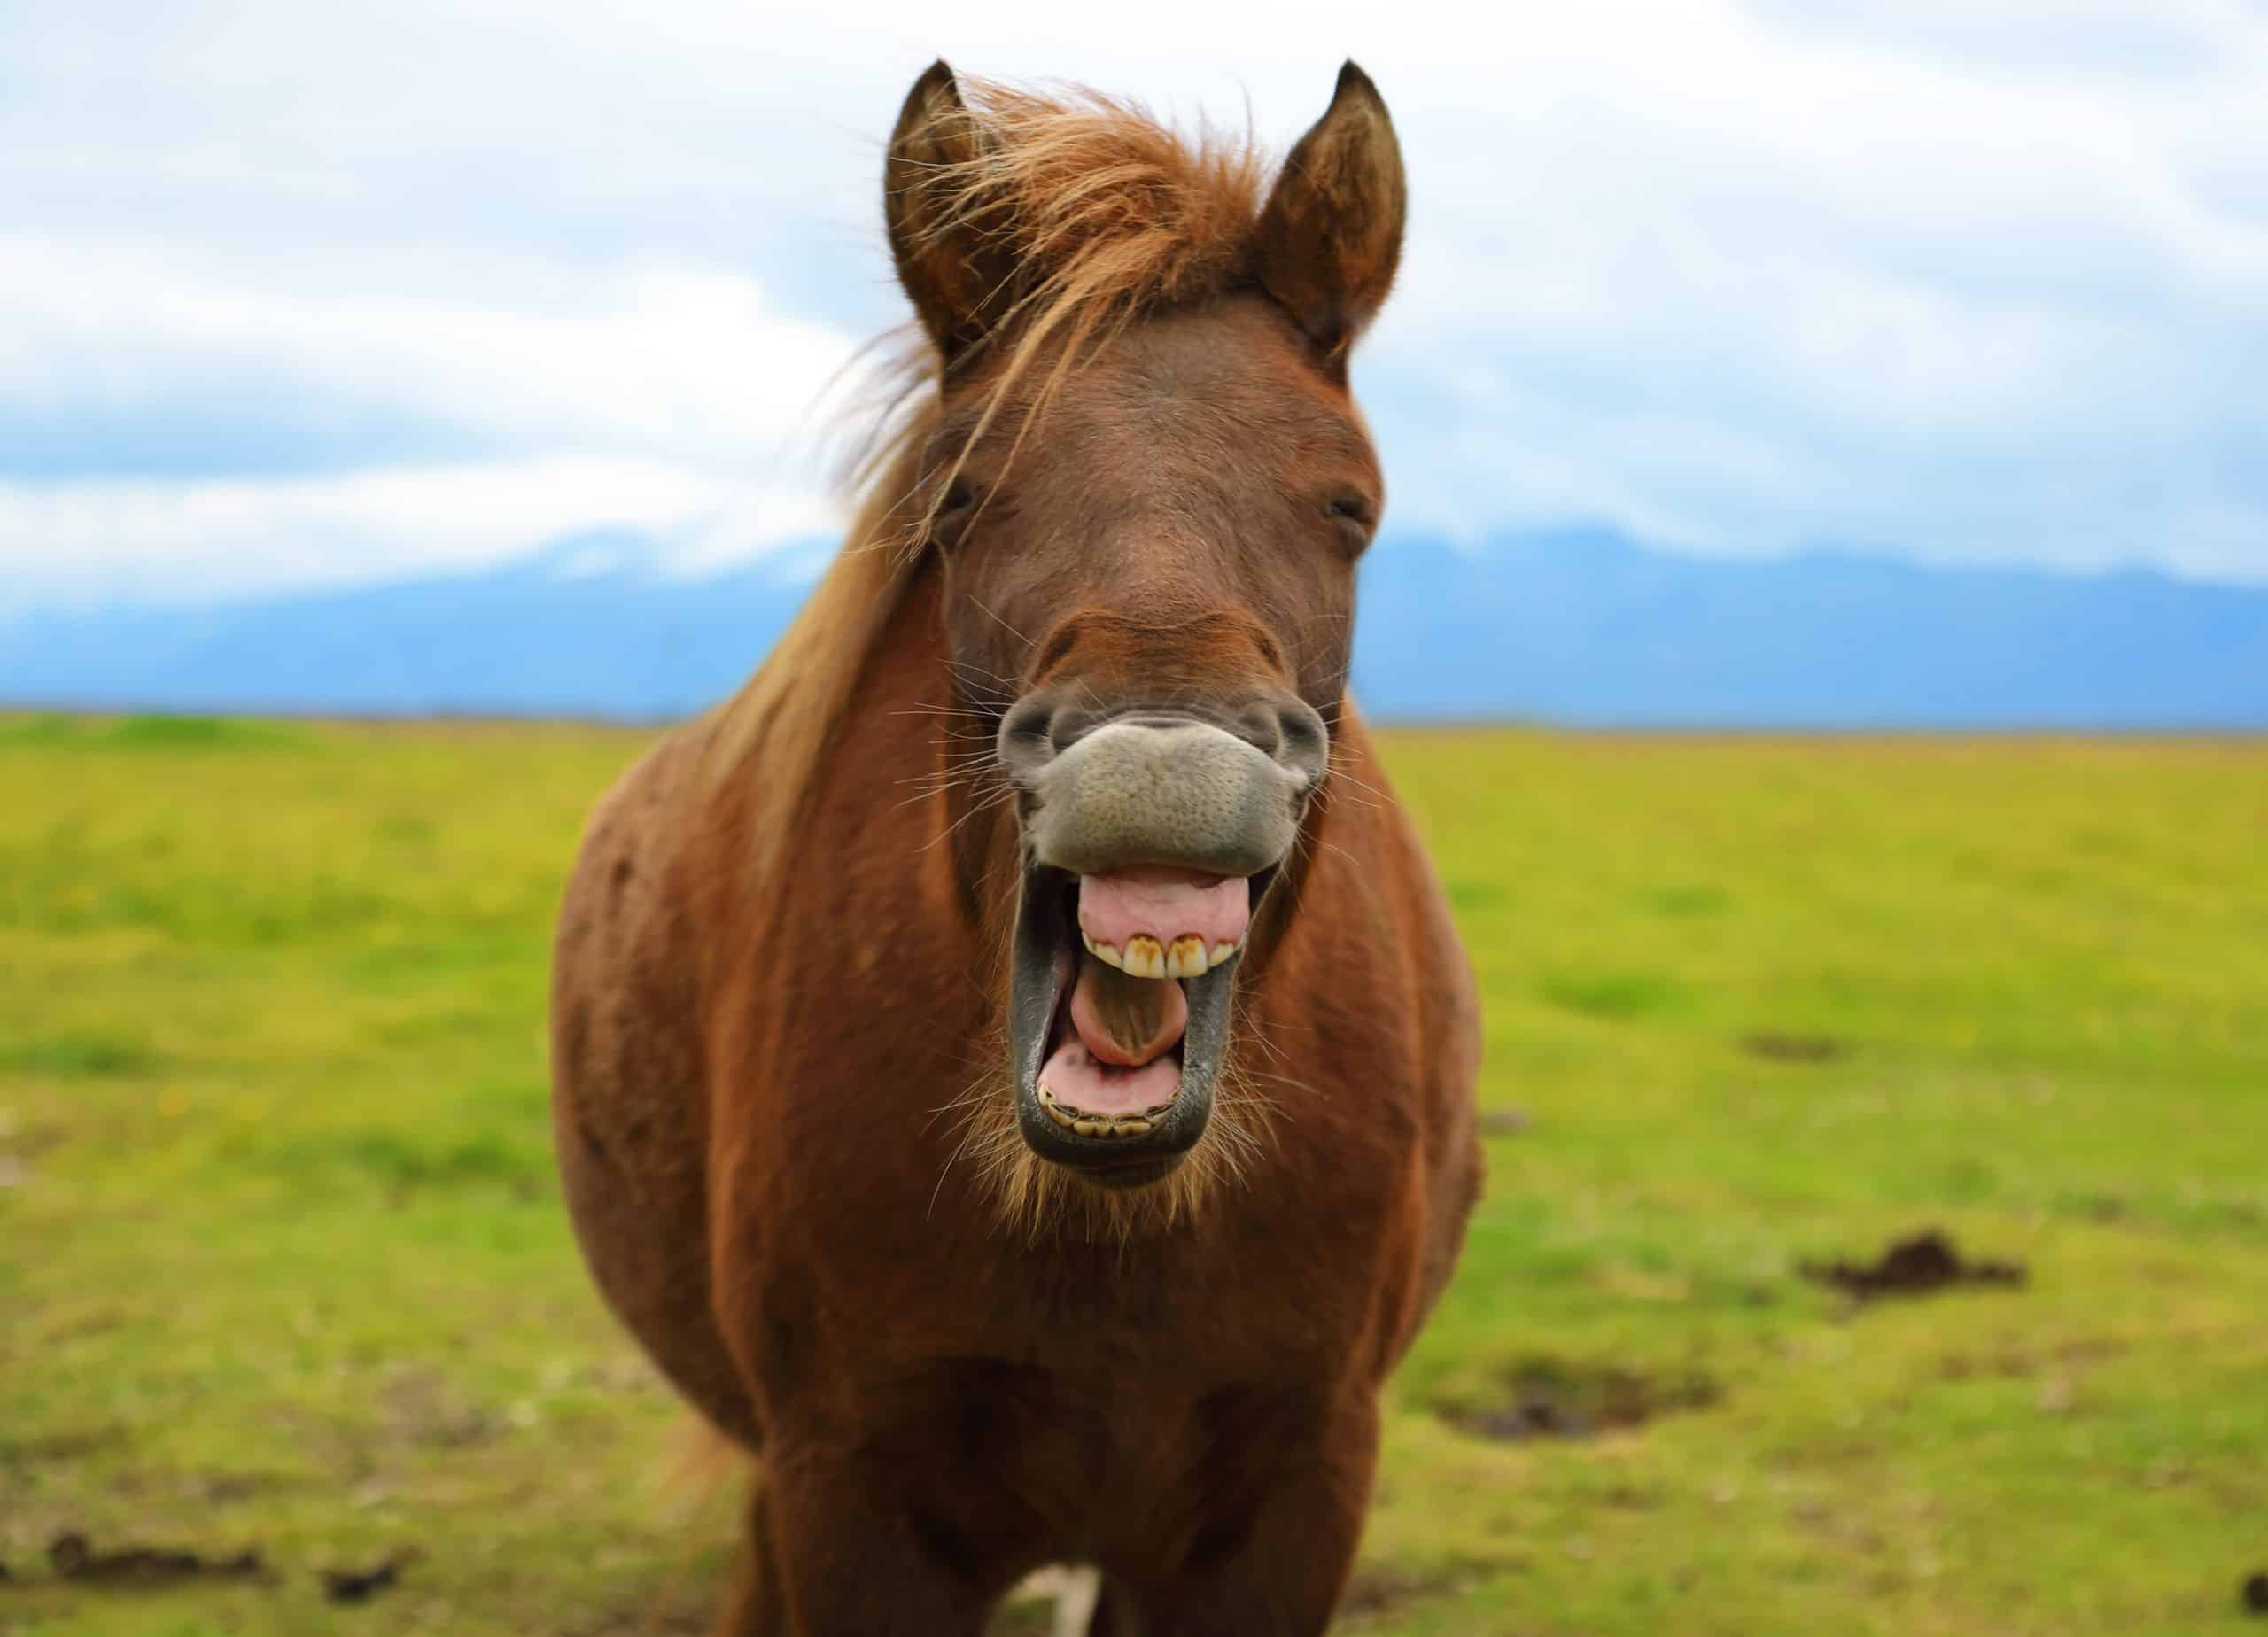 20 Horse Jokes To Make You Laugh